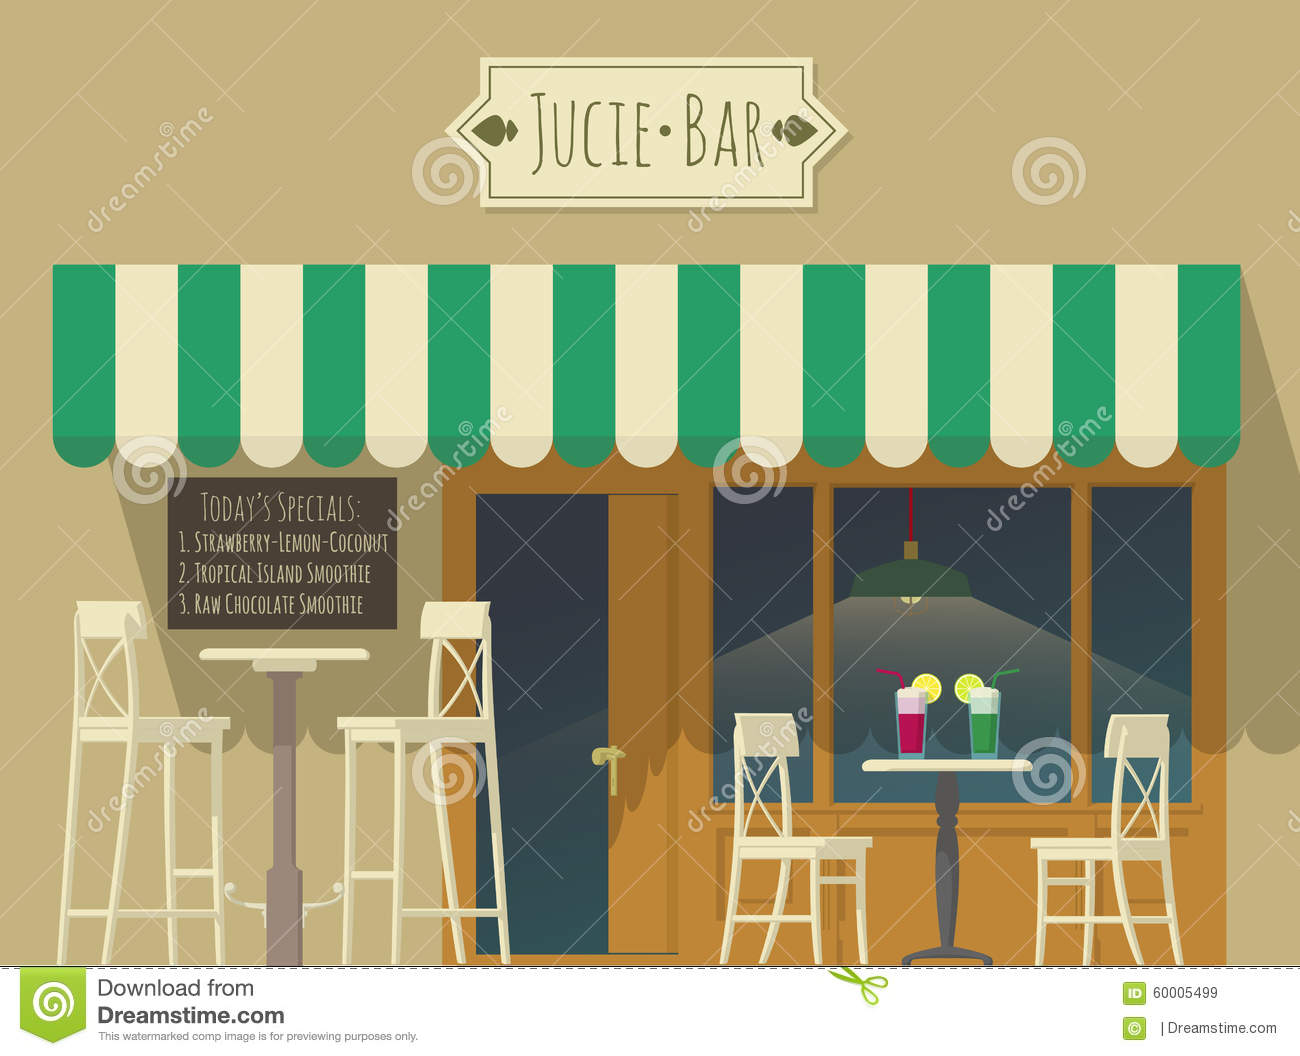 juice-bar-illustration-retro-street-terrace-60005499 Small Retro House Plans on small stylish house plans, small minimalist house plans, small kitchen house plans, small space house plans, small antique house plans, small vacation house plans, small farm style house plans, small medieval house plans, small romantic house plans, small handicap house plans, small historic house plans, small neoclassical house plans, small one story house plans, small house house plans, small hillside house plans, small family house plans, small urban house plans, small pretty house plans, small japanese style house plans,